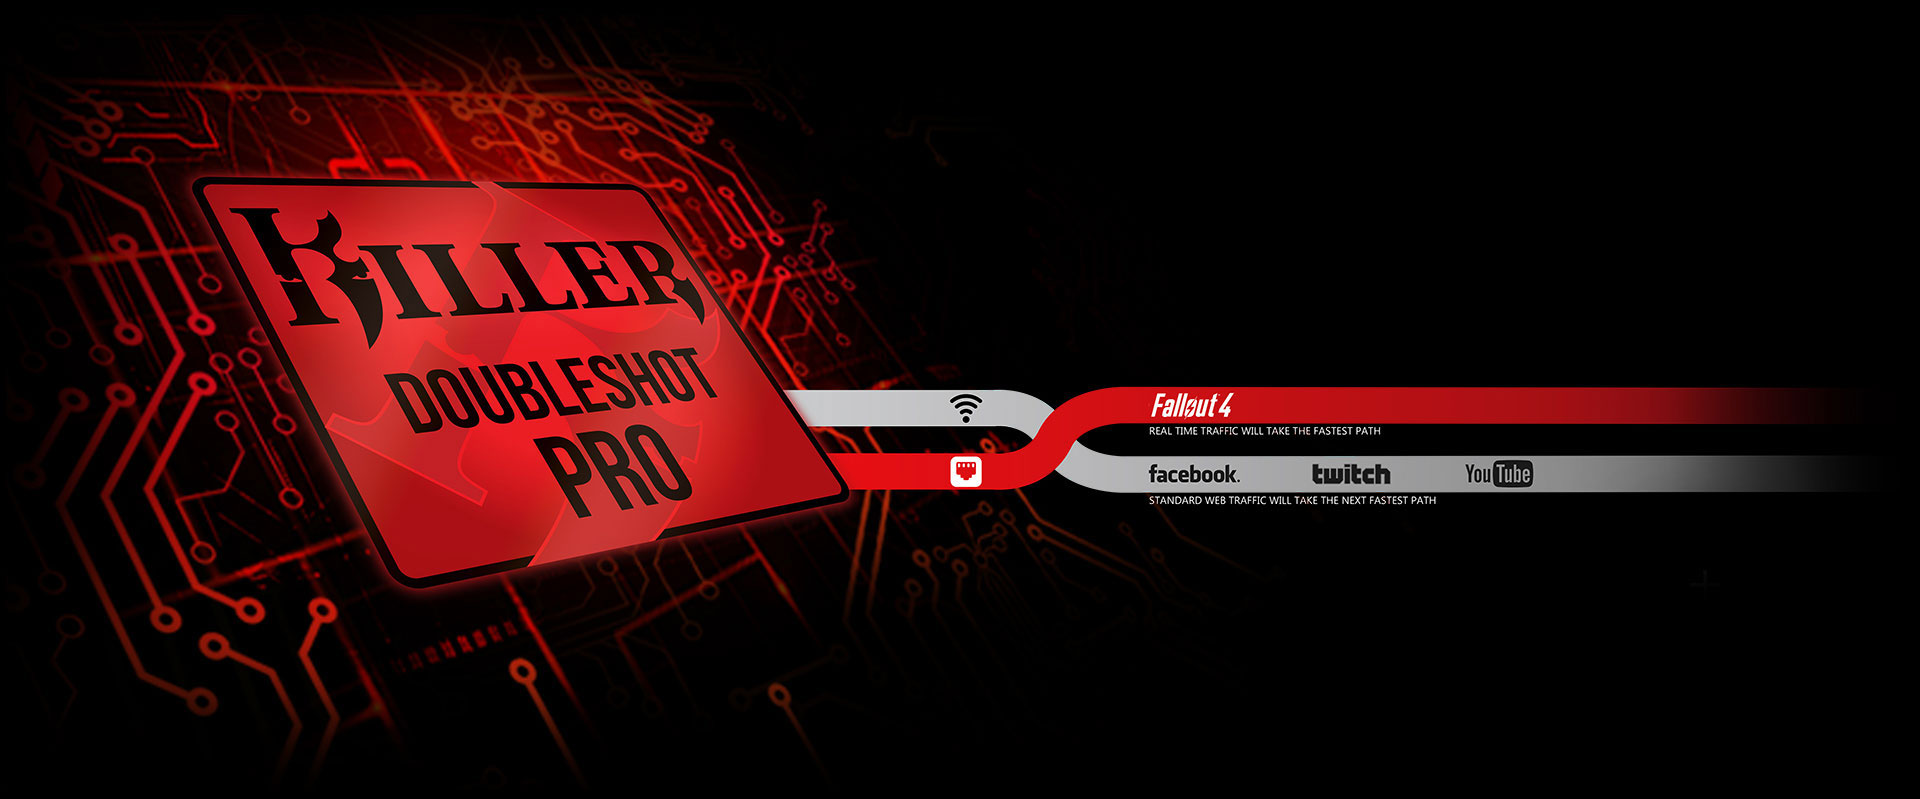 Msi Gt75 Titan The Game Just Got Real Series Circuit 4 Leds Youtube Killer Doubleshot Pro Protecting Your Ping